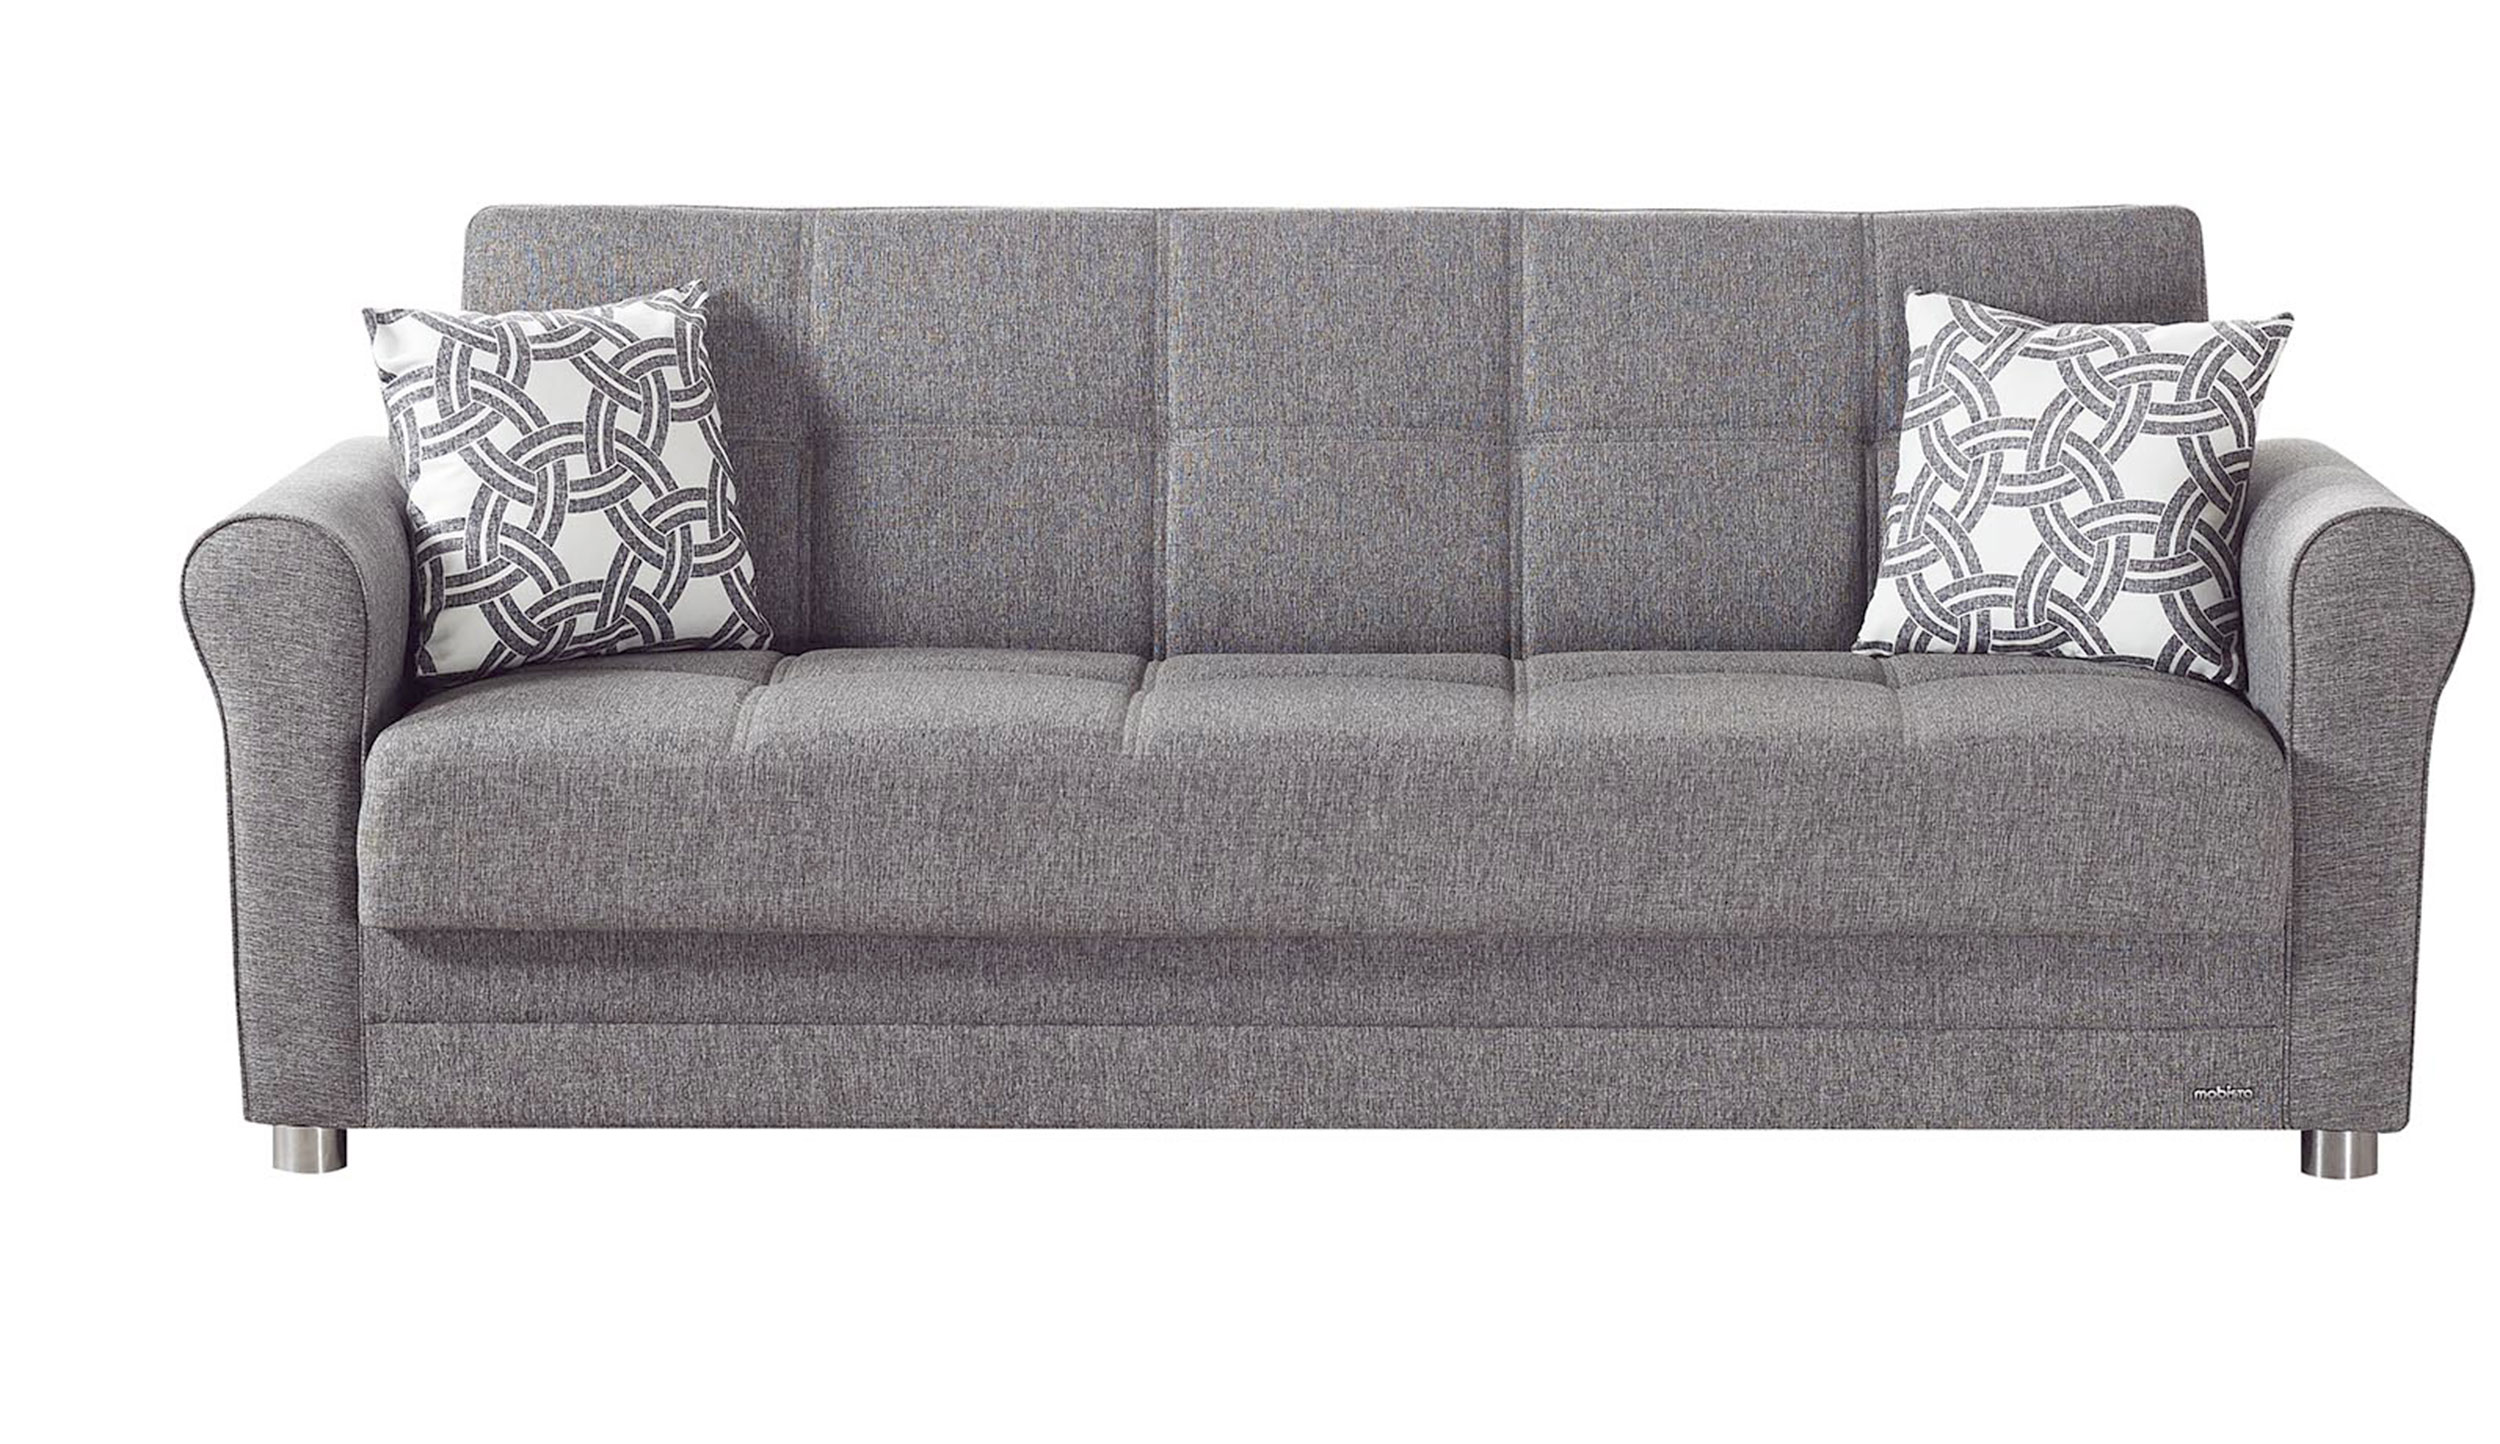 Divano gray sofa bed by mobista for Sofa divano